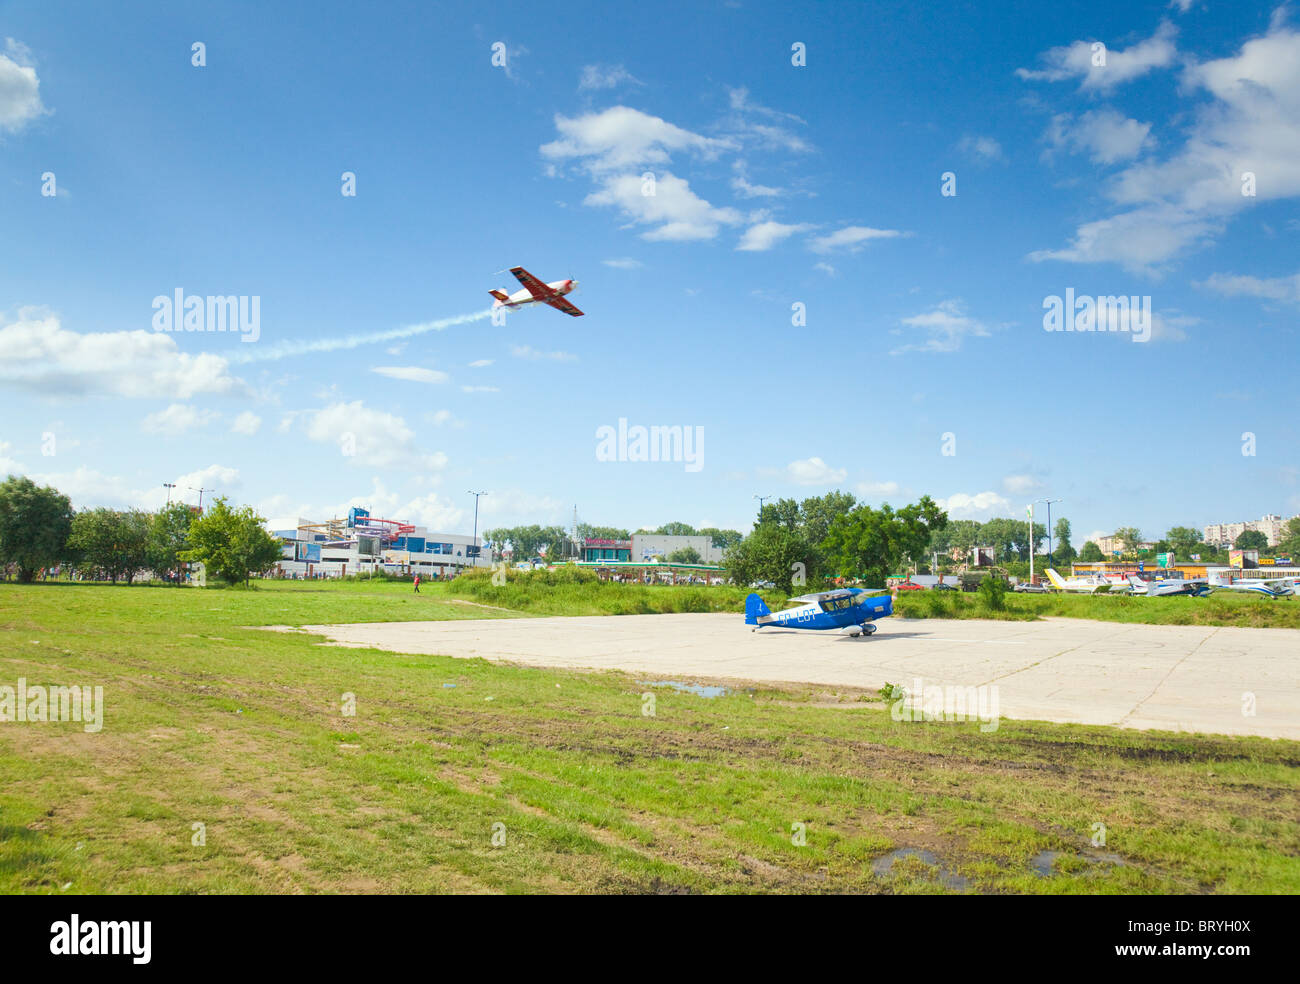 Air Show 2009 in Krakow. Blue RWD-5R on the runway - Stock Image